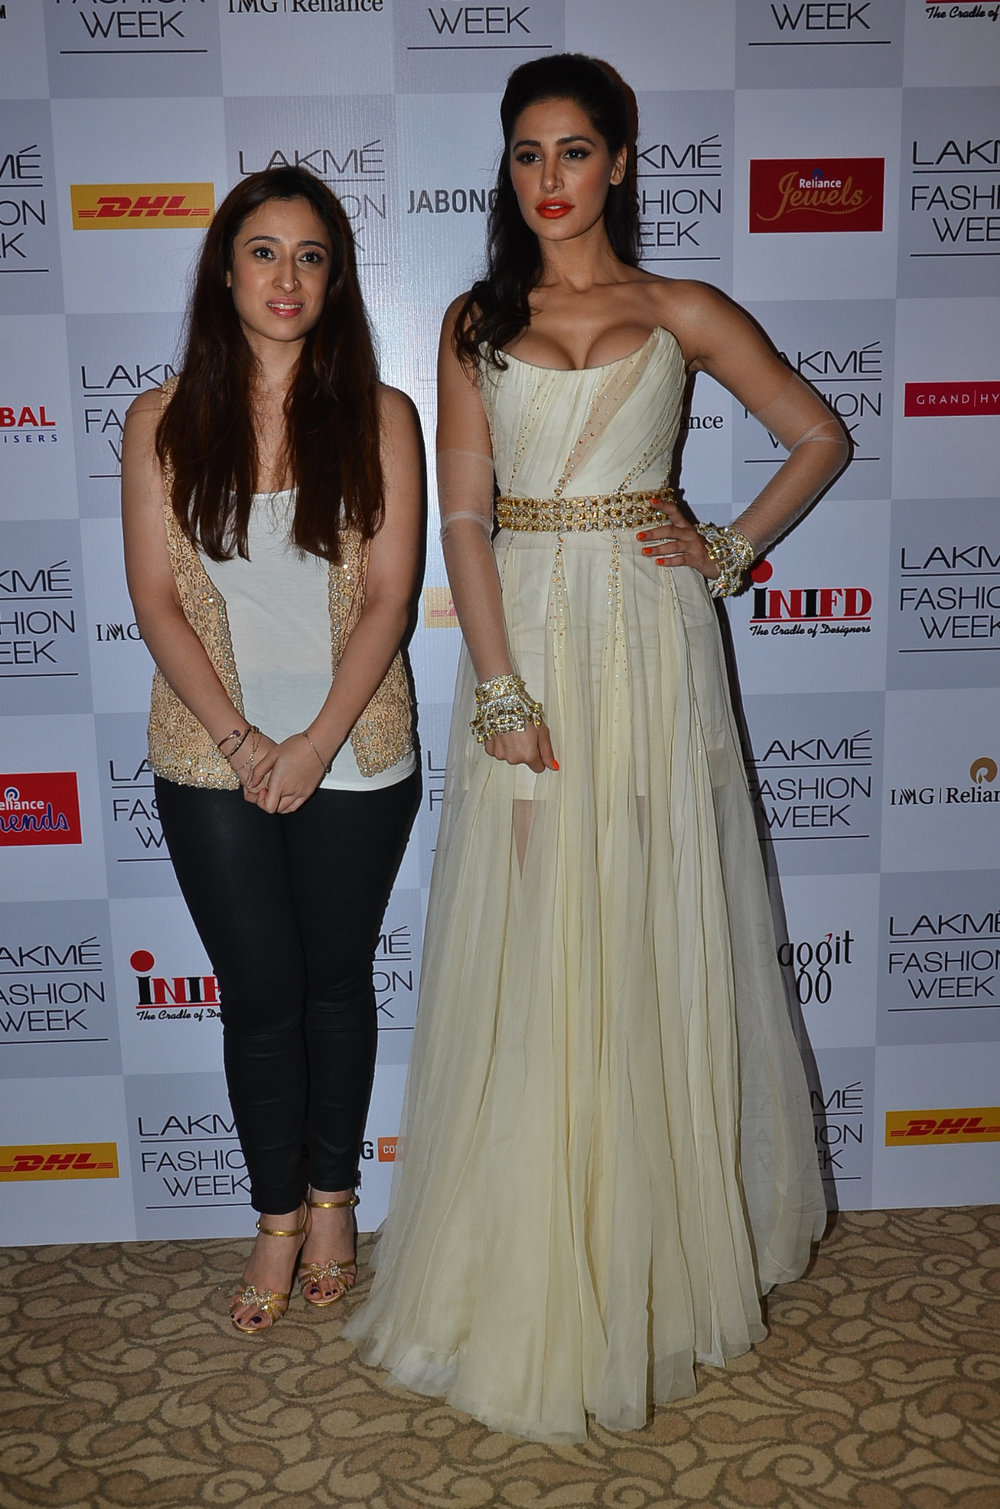 Shehla Khan with Nargis Fakhri